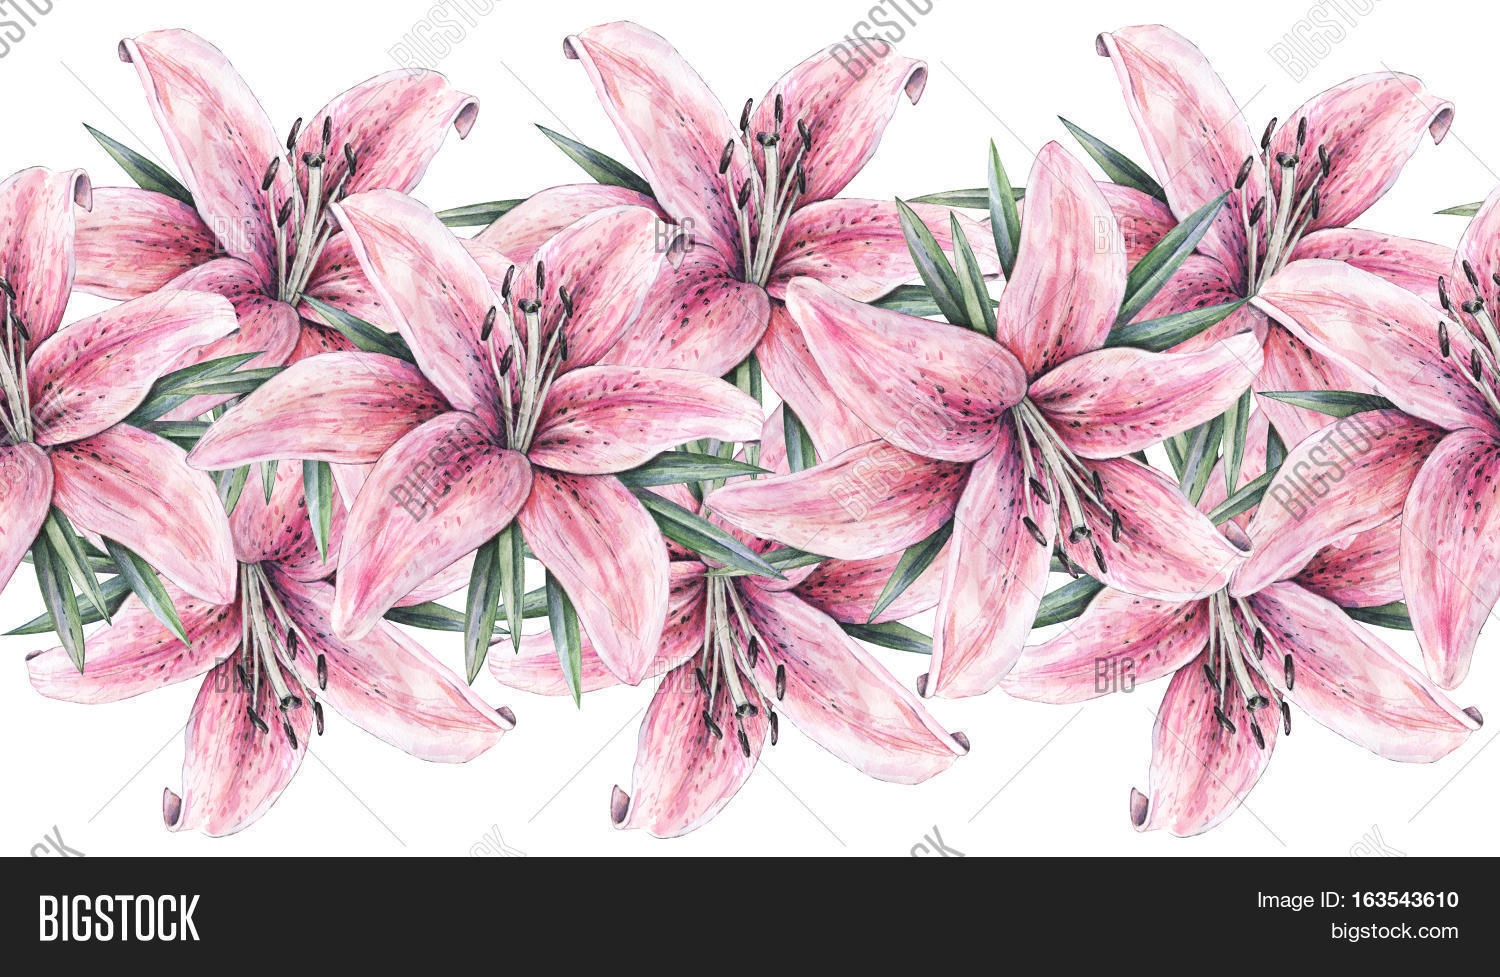 Pink lily flowers image photo free trial bigstock pink lily flowers isolated on white background watercolor handwork illustration drawing of blooming lily izmirmasajfo